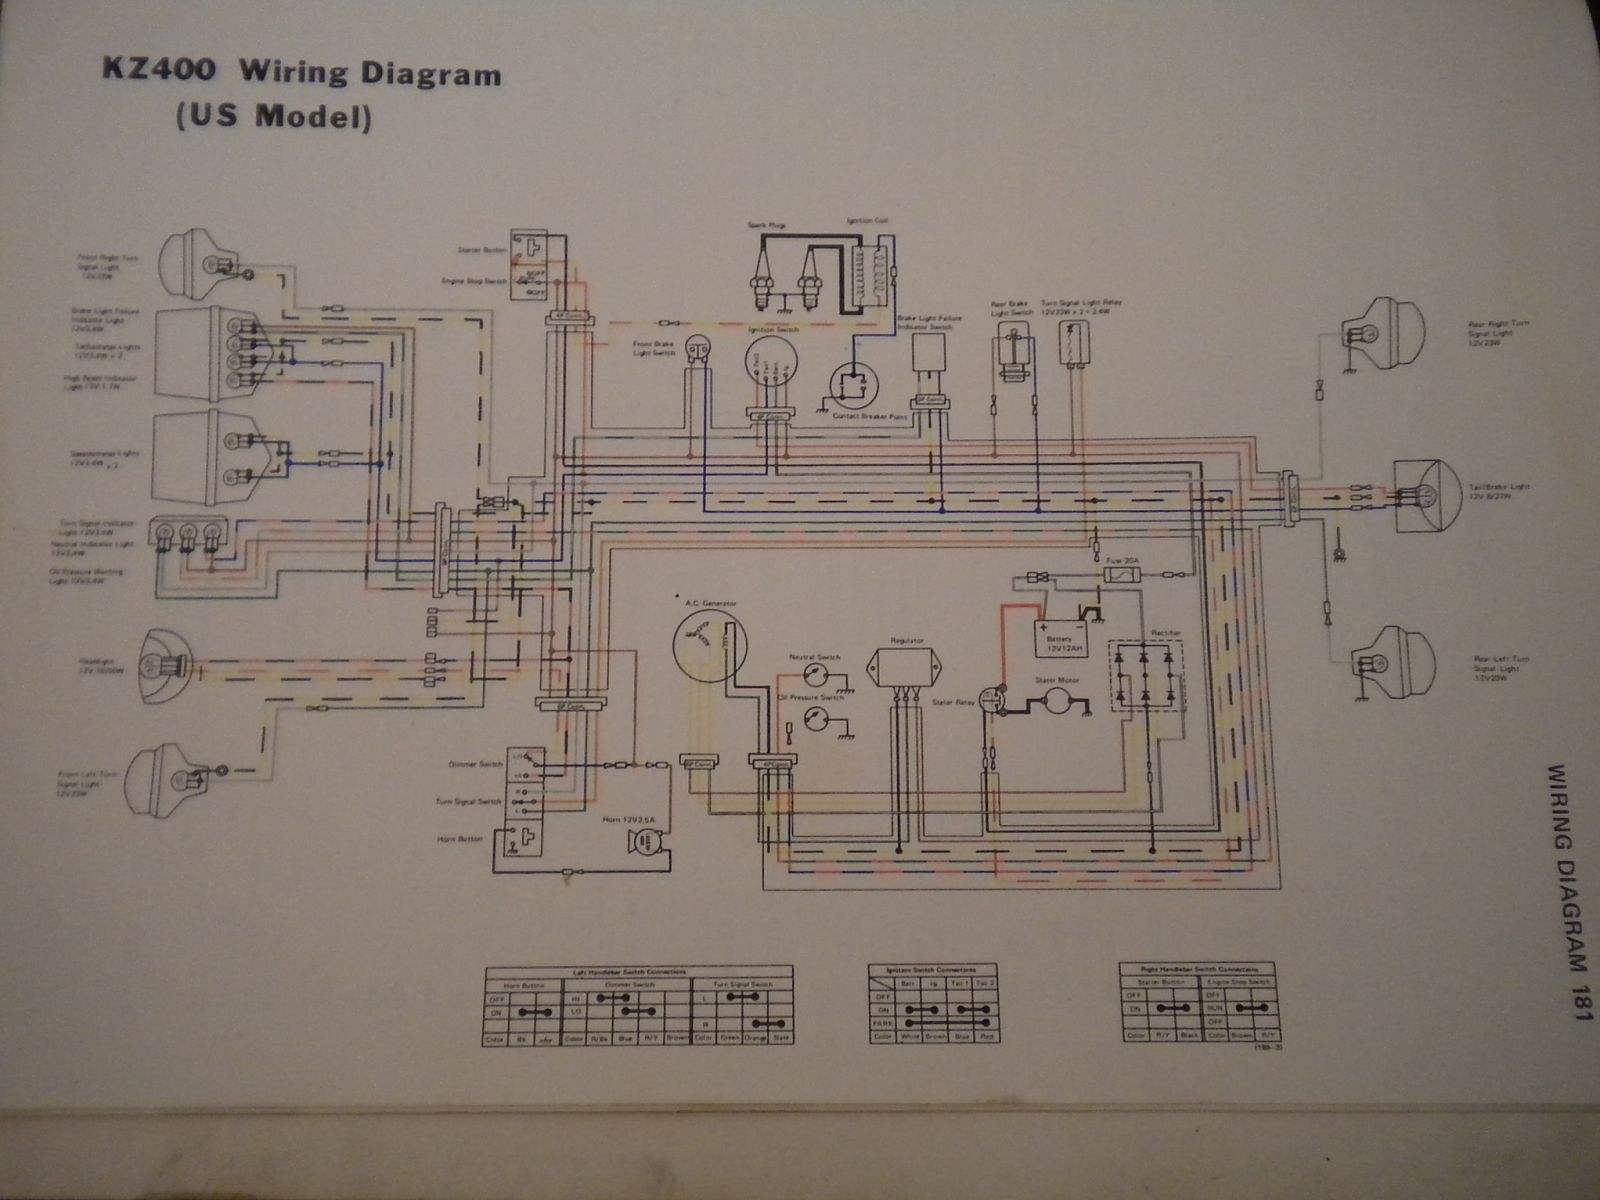 Kz440 Wiring Diagram 1982 Explained Diagrams Kawasaki Kz1300 Motorcycle Photo Wire Data Schema U2022 Parts